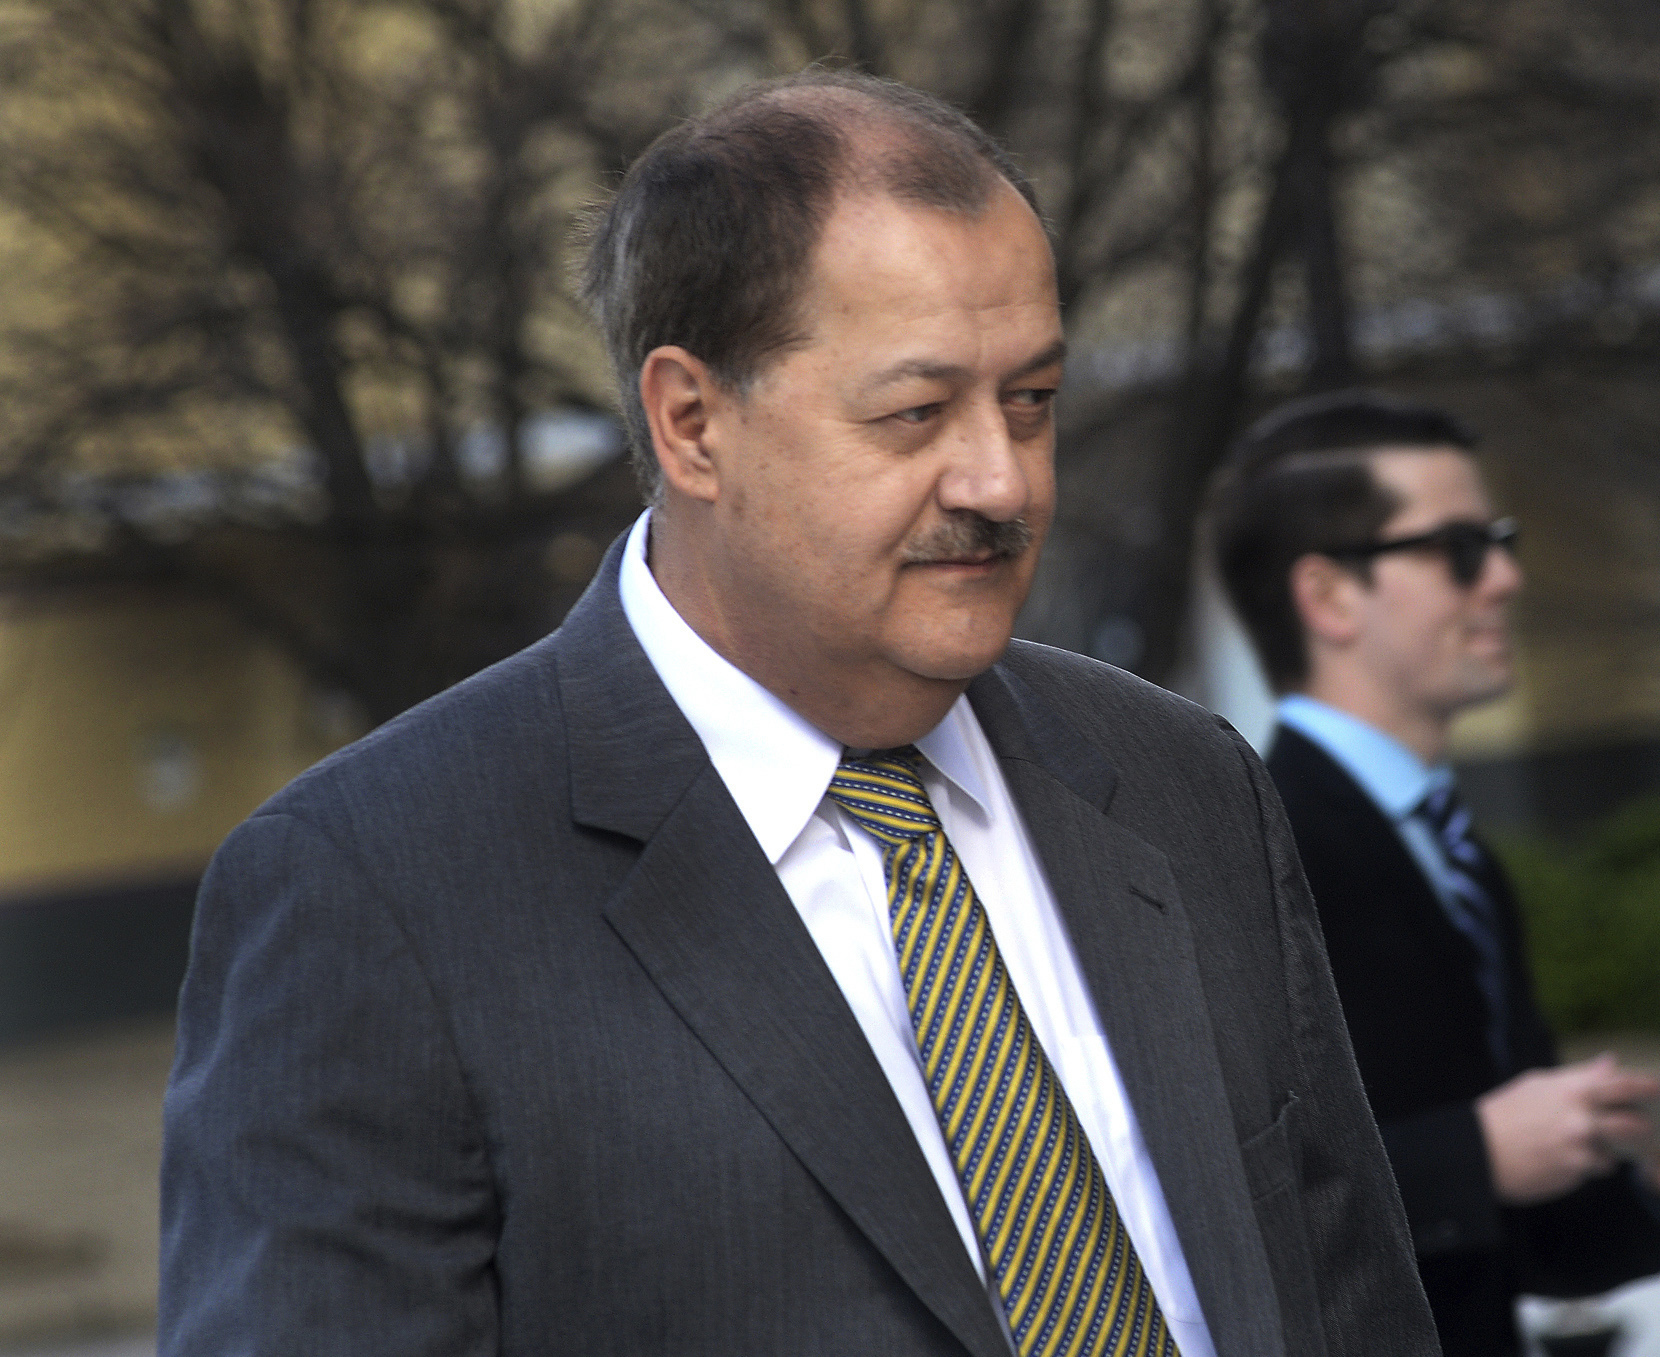 Mine Explosion-Blankenship FILE - In a Wednesday, April 6, 2016, file photo, former Massey CEO Don Blankenship is escorted by Homeland Security officers from the Robert C. Byrd U.S. Courthouse in Charleston, W. Va. Blankenship has asked President Donald Trump to resist attempts in Congress to enhance criminal penalties for coal executives who violate mine safety and health standards. Blankenship, who recently was freed from federal prison, also asked the president in a letter Tuesday, May 16, 2017, to re-examine a federal investigation into the nation's worst coal mining disaster in four decades. (F. Brian Ferguson/Charleston Gazette-Mail via AP, File)